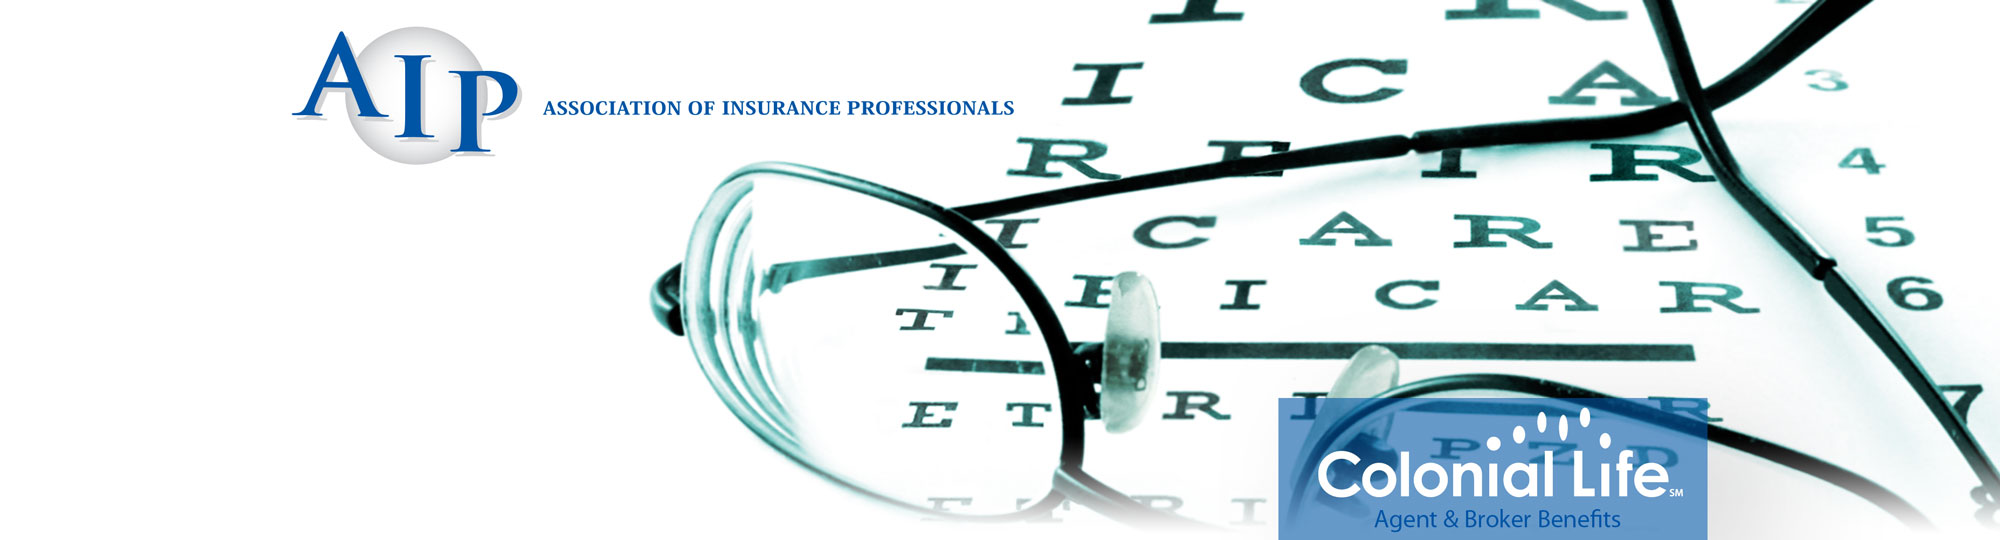 AIP Vision Insurance for Colonial Life Agents and Brokers